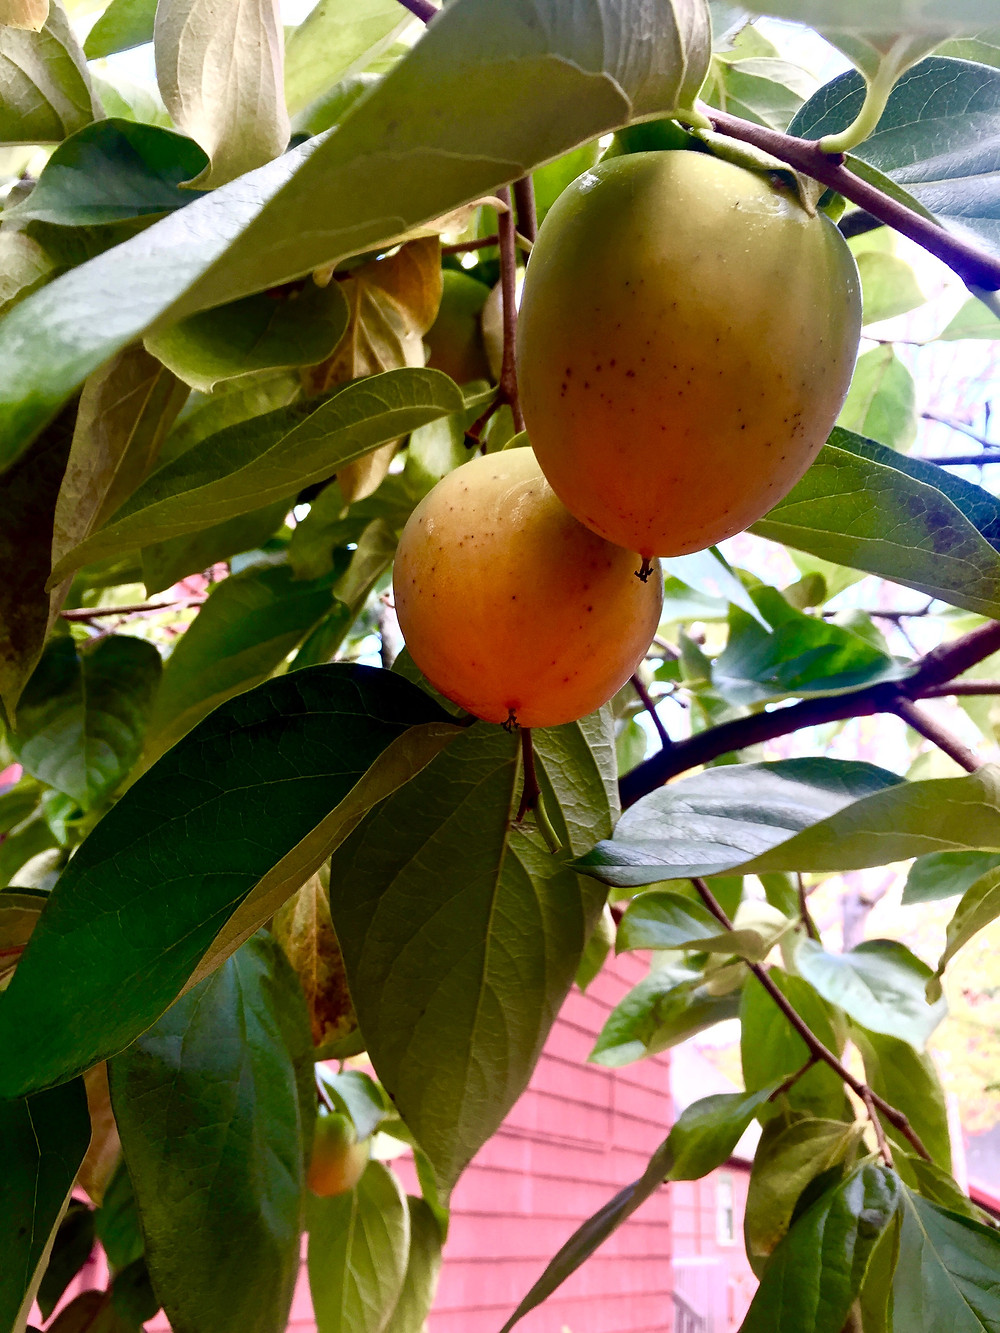 Persimmons growing in the PNW - Gilman Village, Issaquah WA